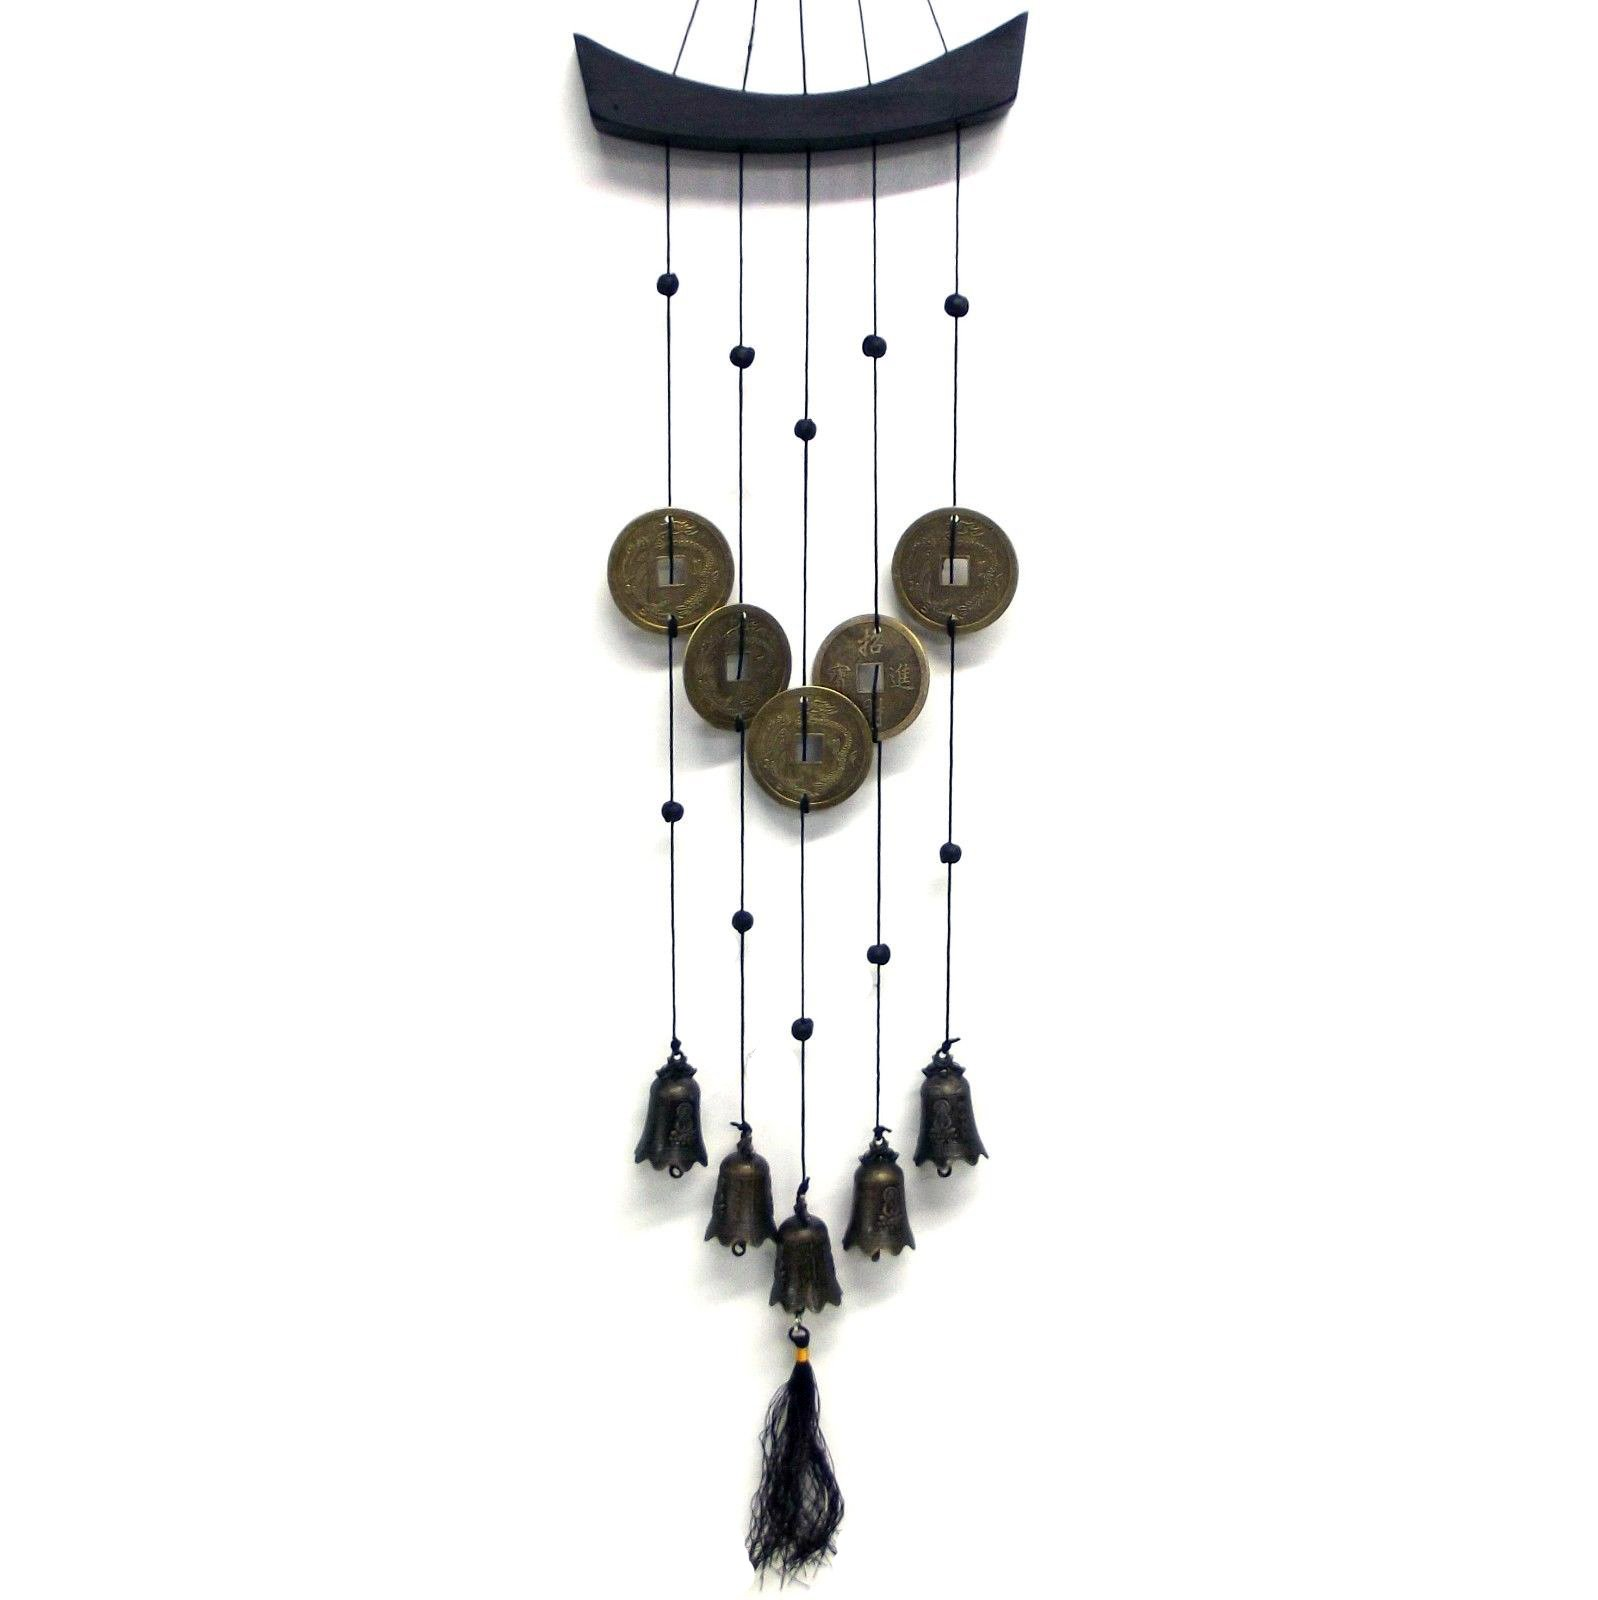 1 x metal wind chime feng shui bells money coins hanging mobile sh61 empire gifts. Black Bedroom Furniture Sets. Home Design Ideas